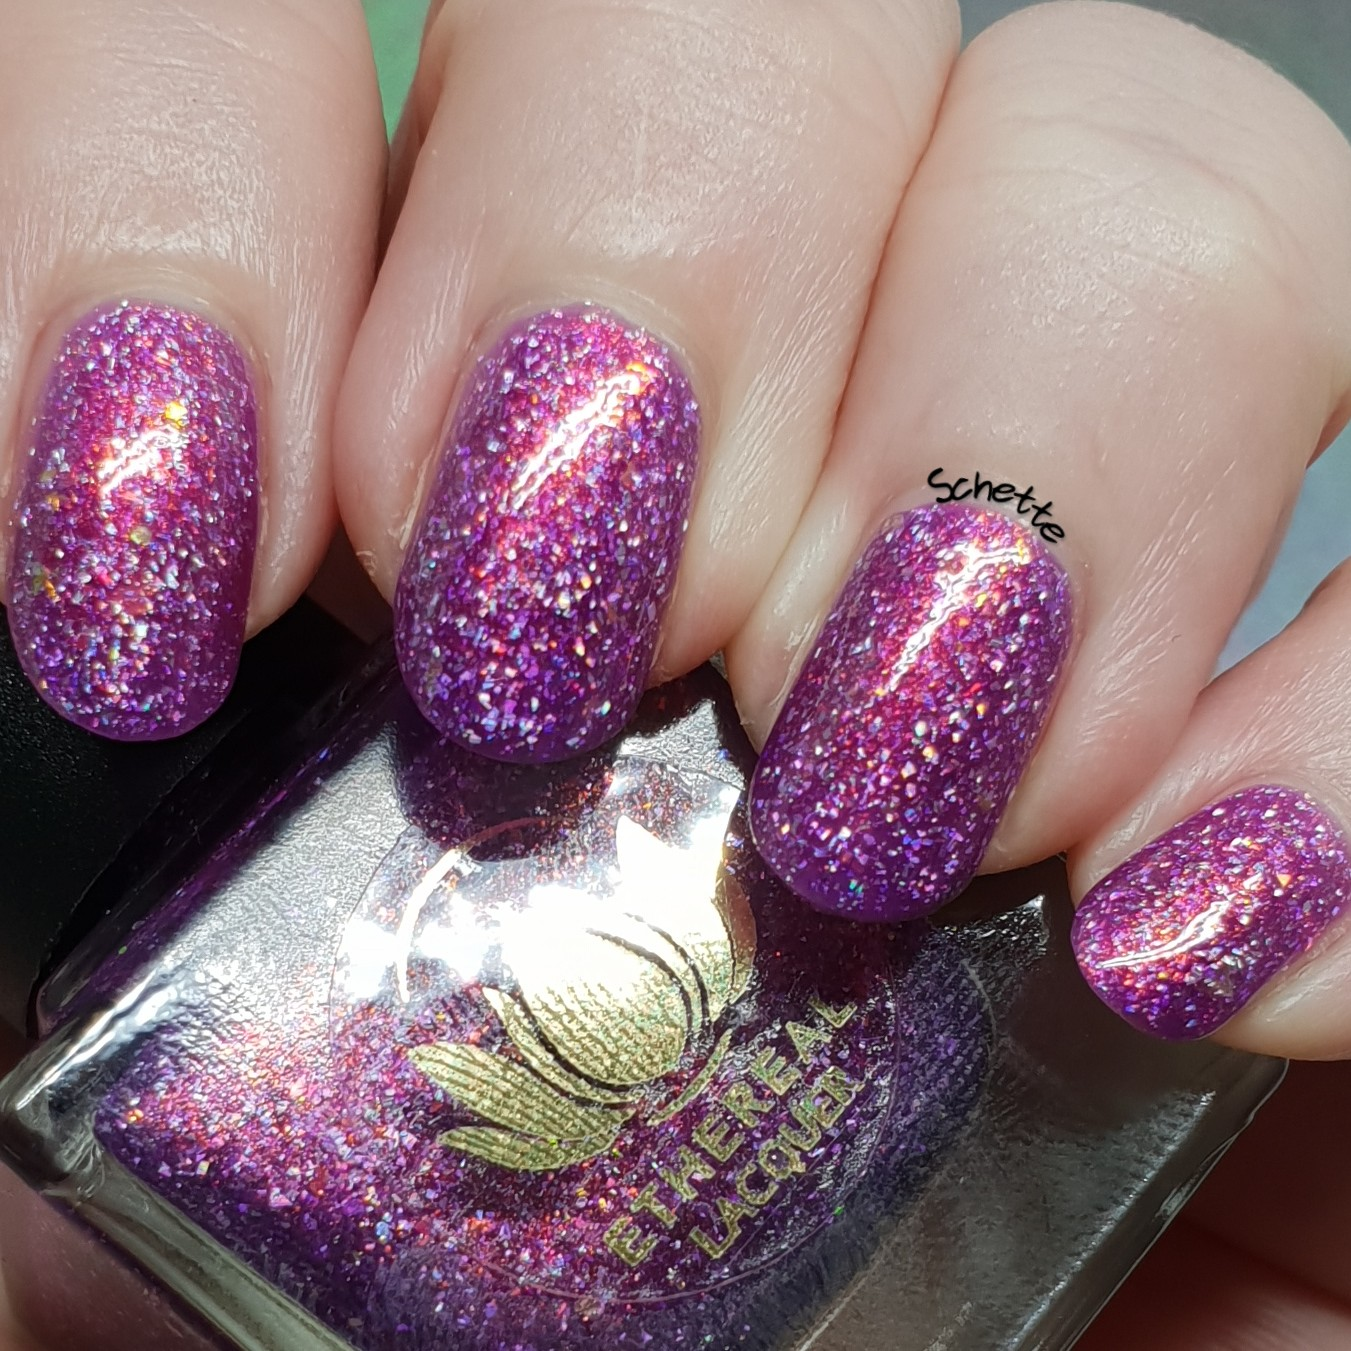 Ethereal Lacquer - Adbuction